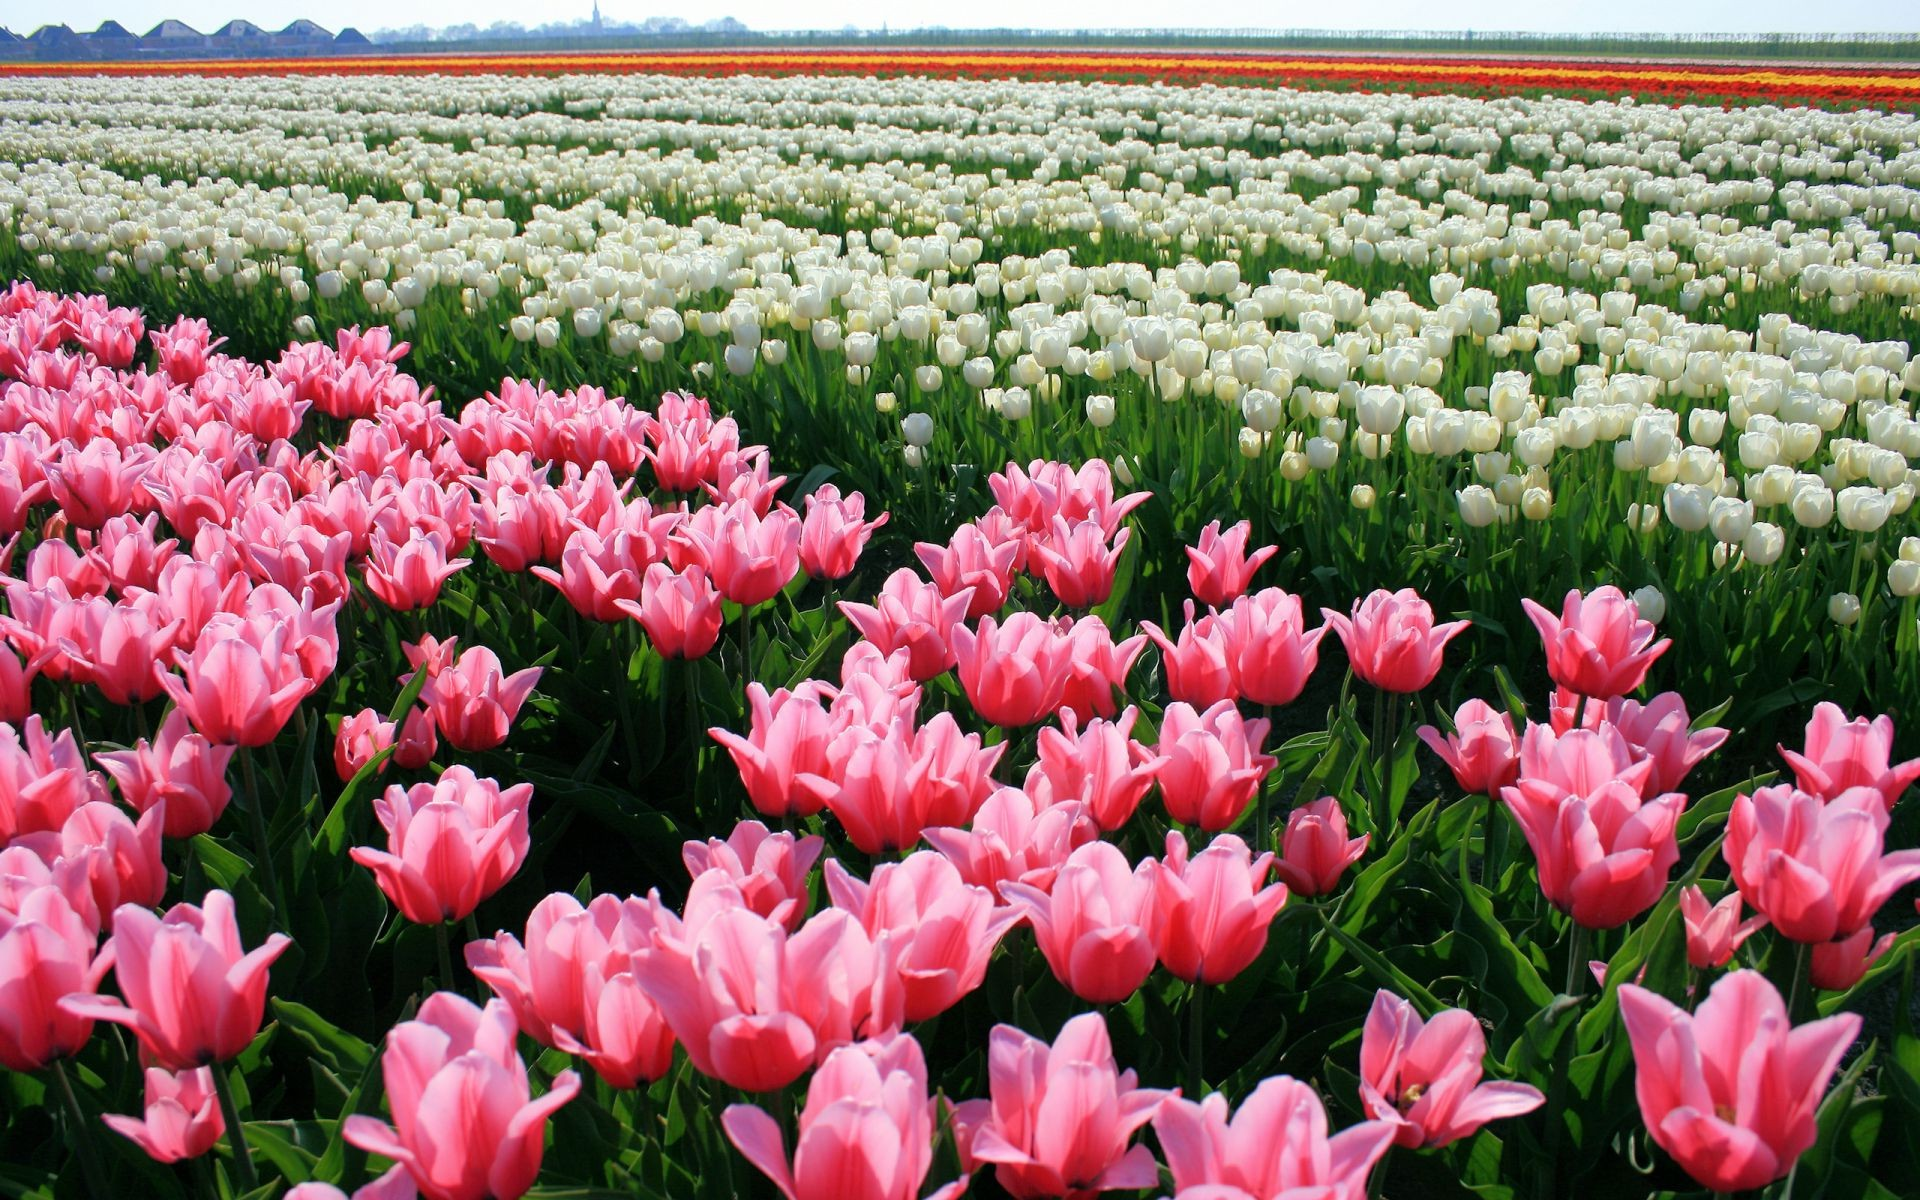 The plantation of tulips in Holland